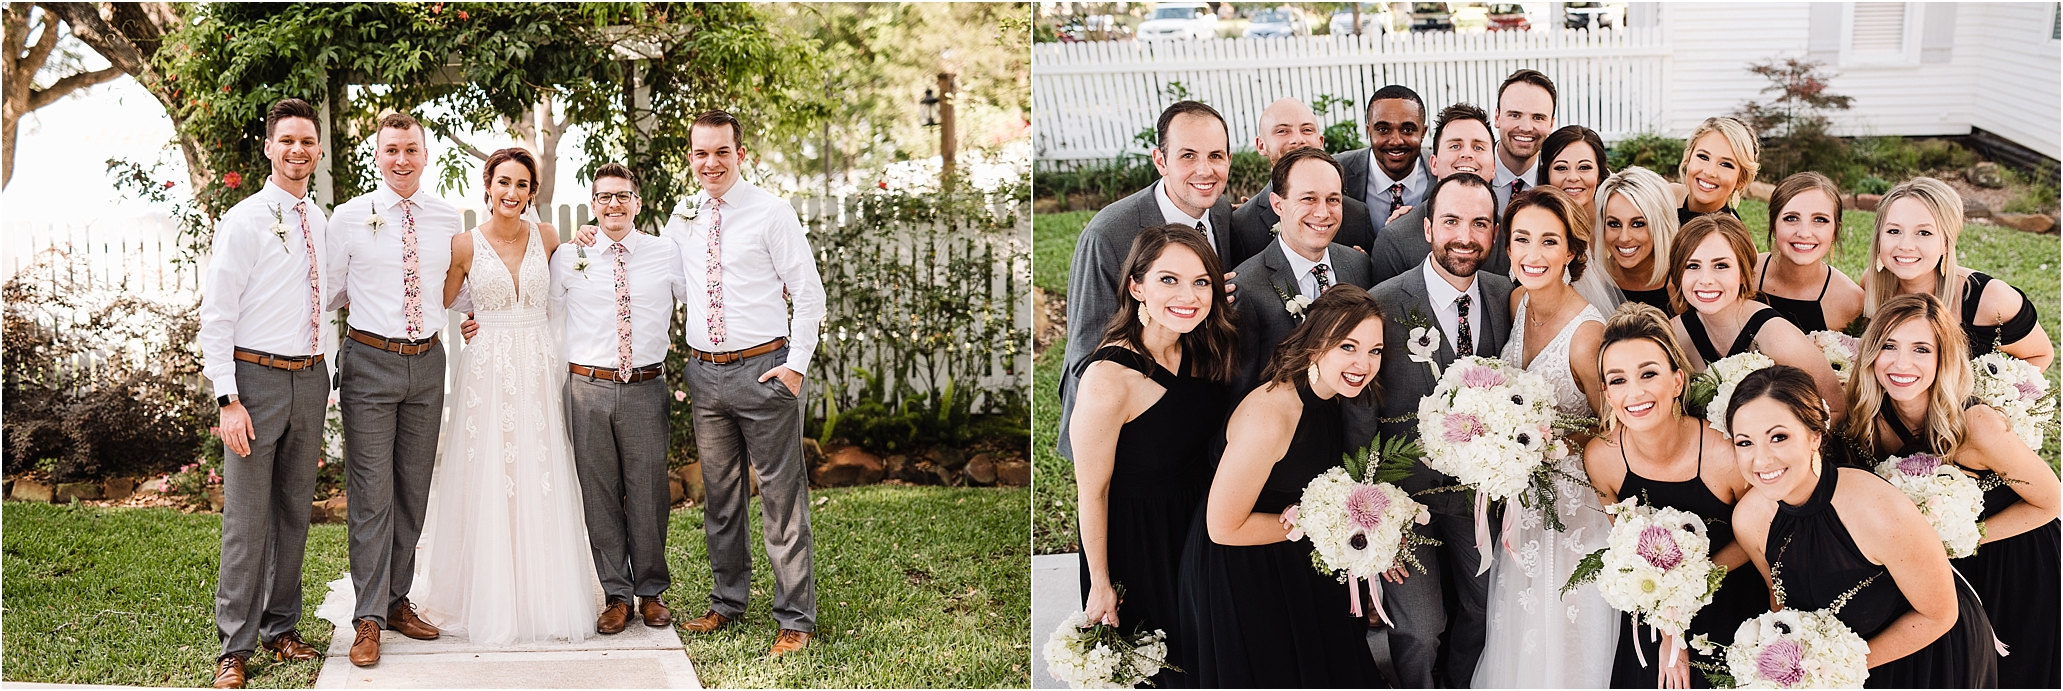 PattisonHouse_TexasWeddingPhotographer_CarlyCrockett&MattBrownWedding_0091.jpg